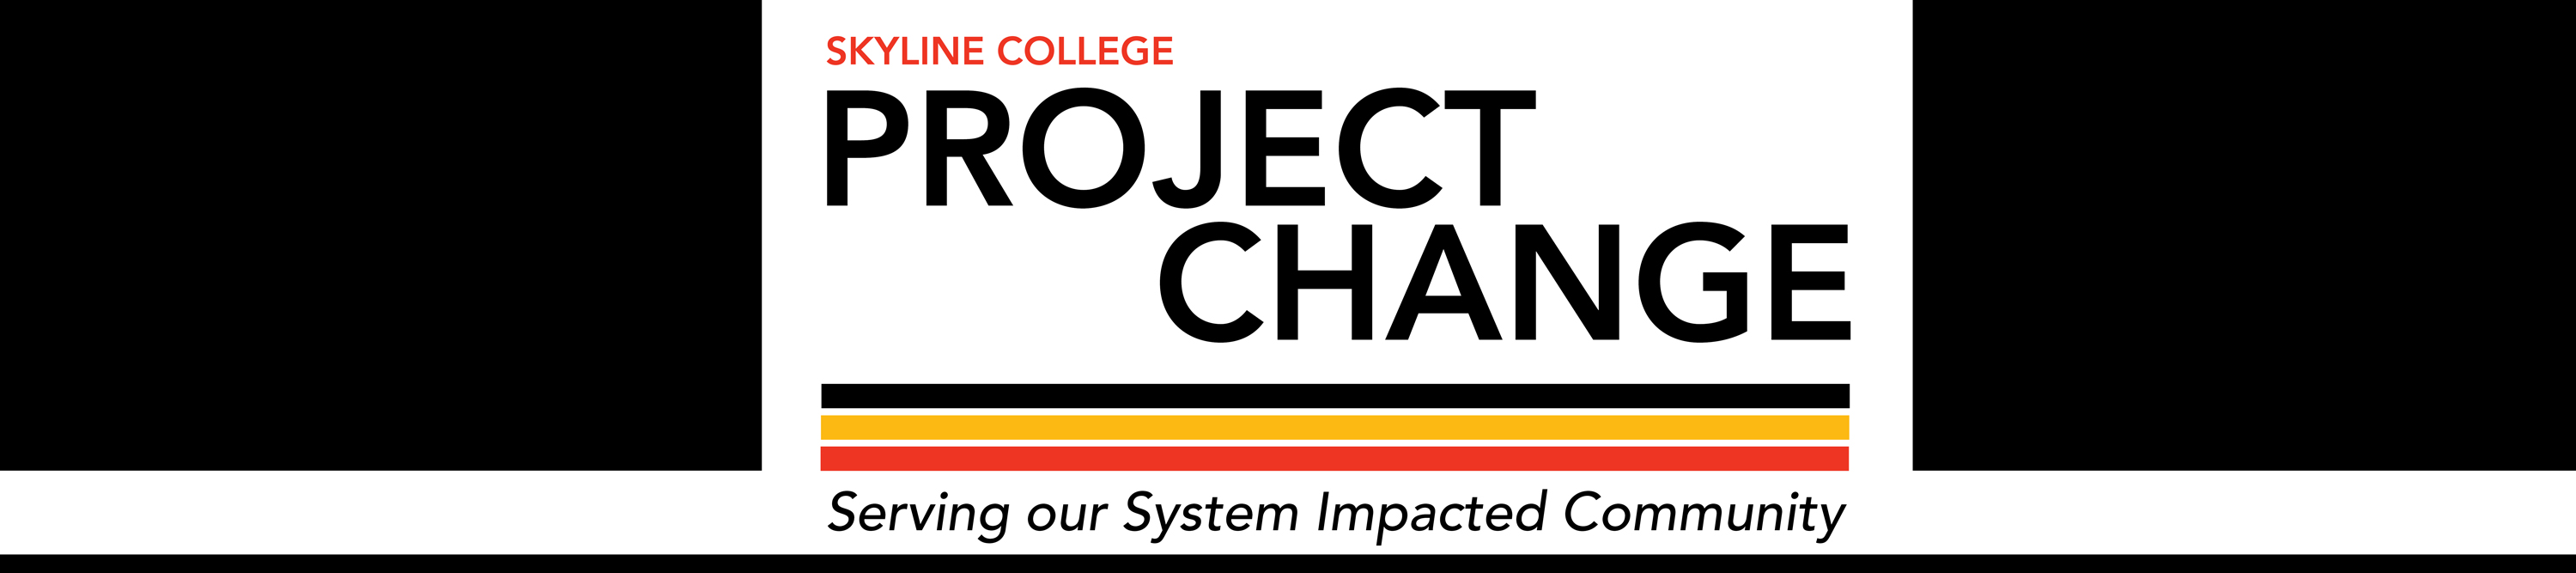 Project Change